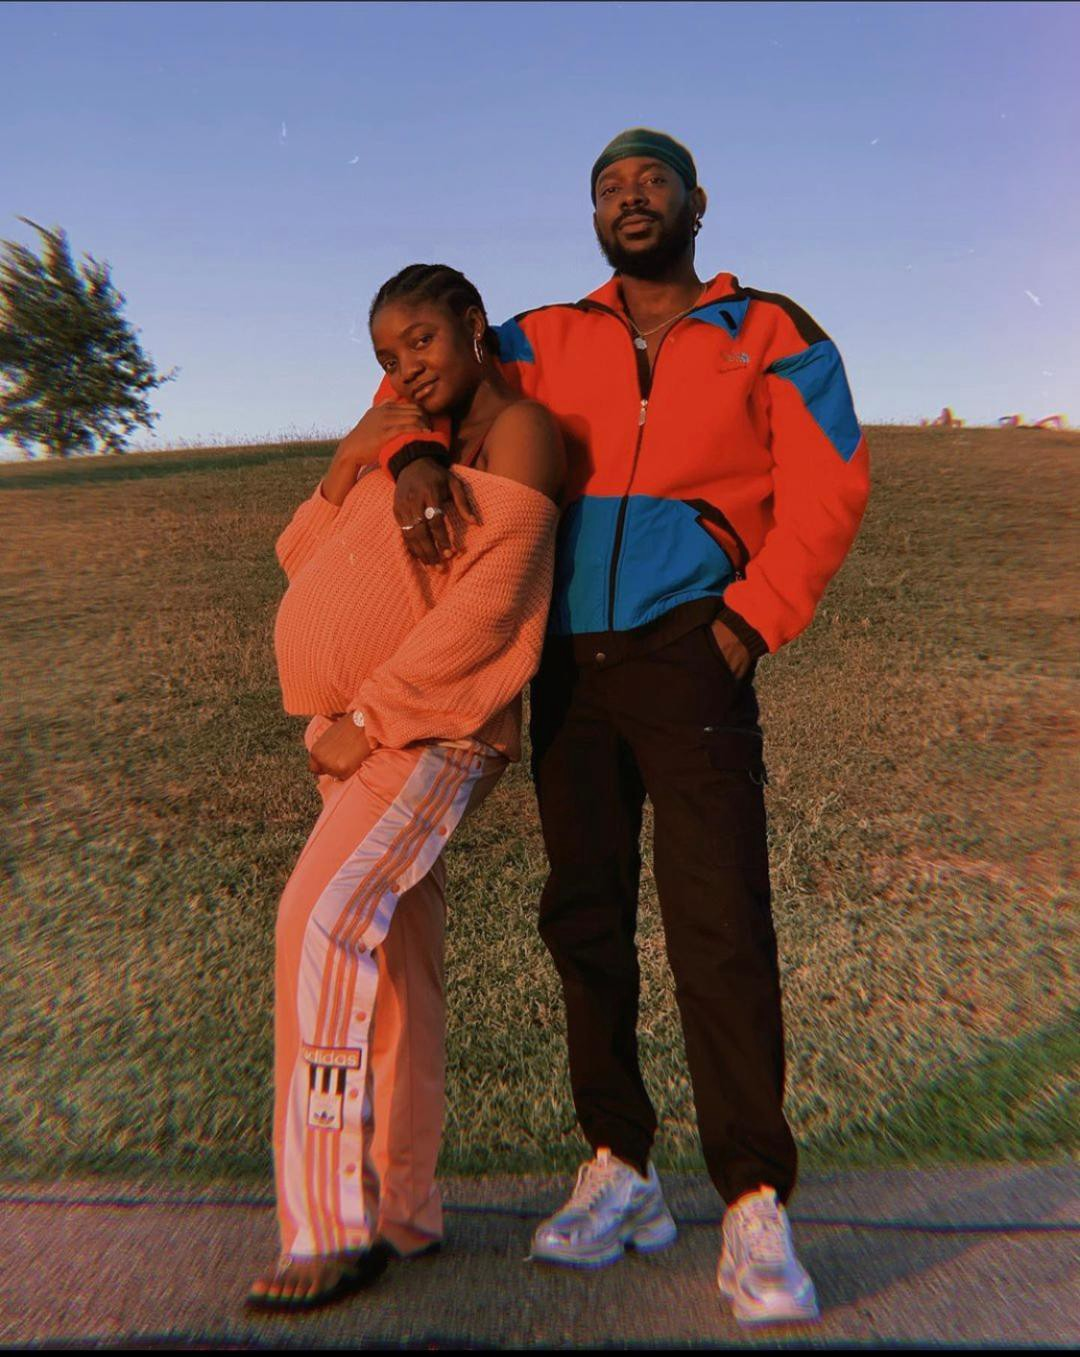 Adekunke Gold slept with another lady when his wife, Simi was pregnant [PHOTOS]